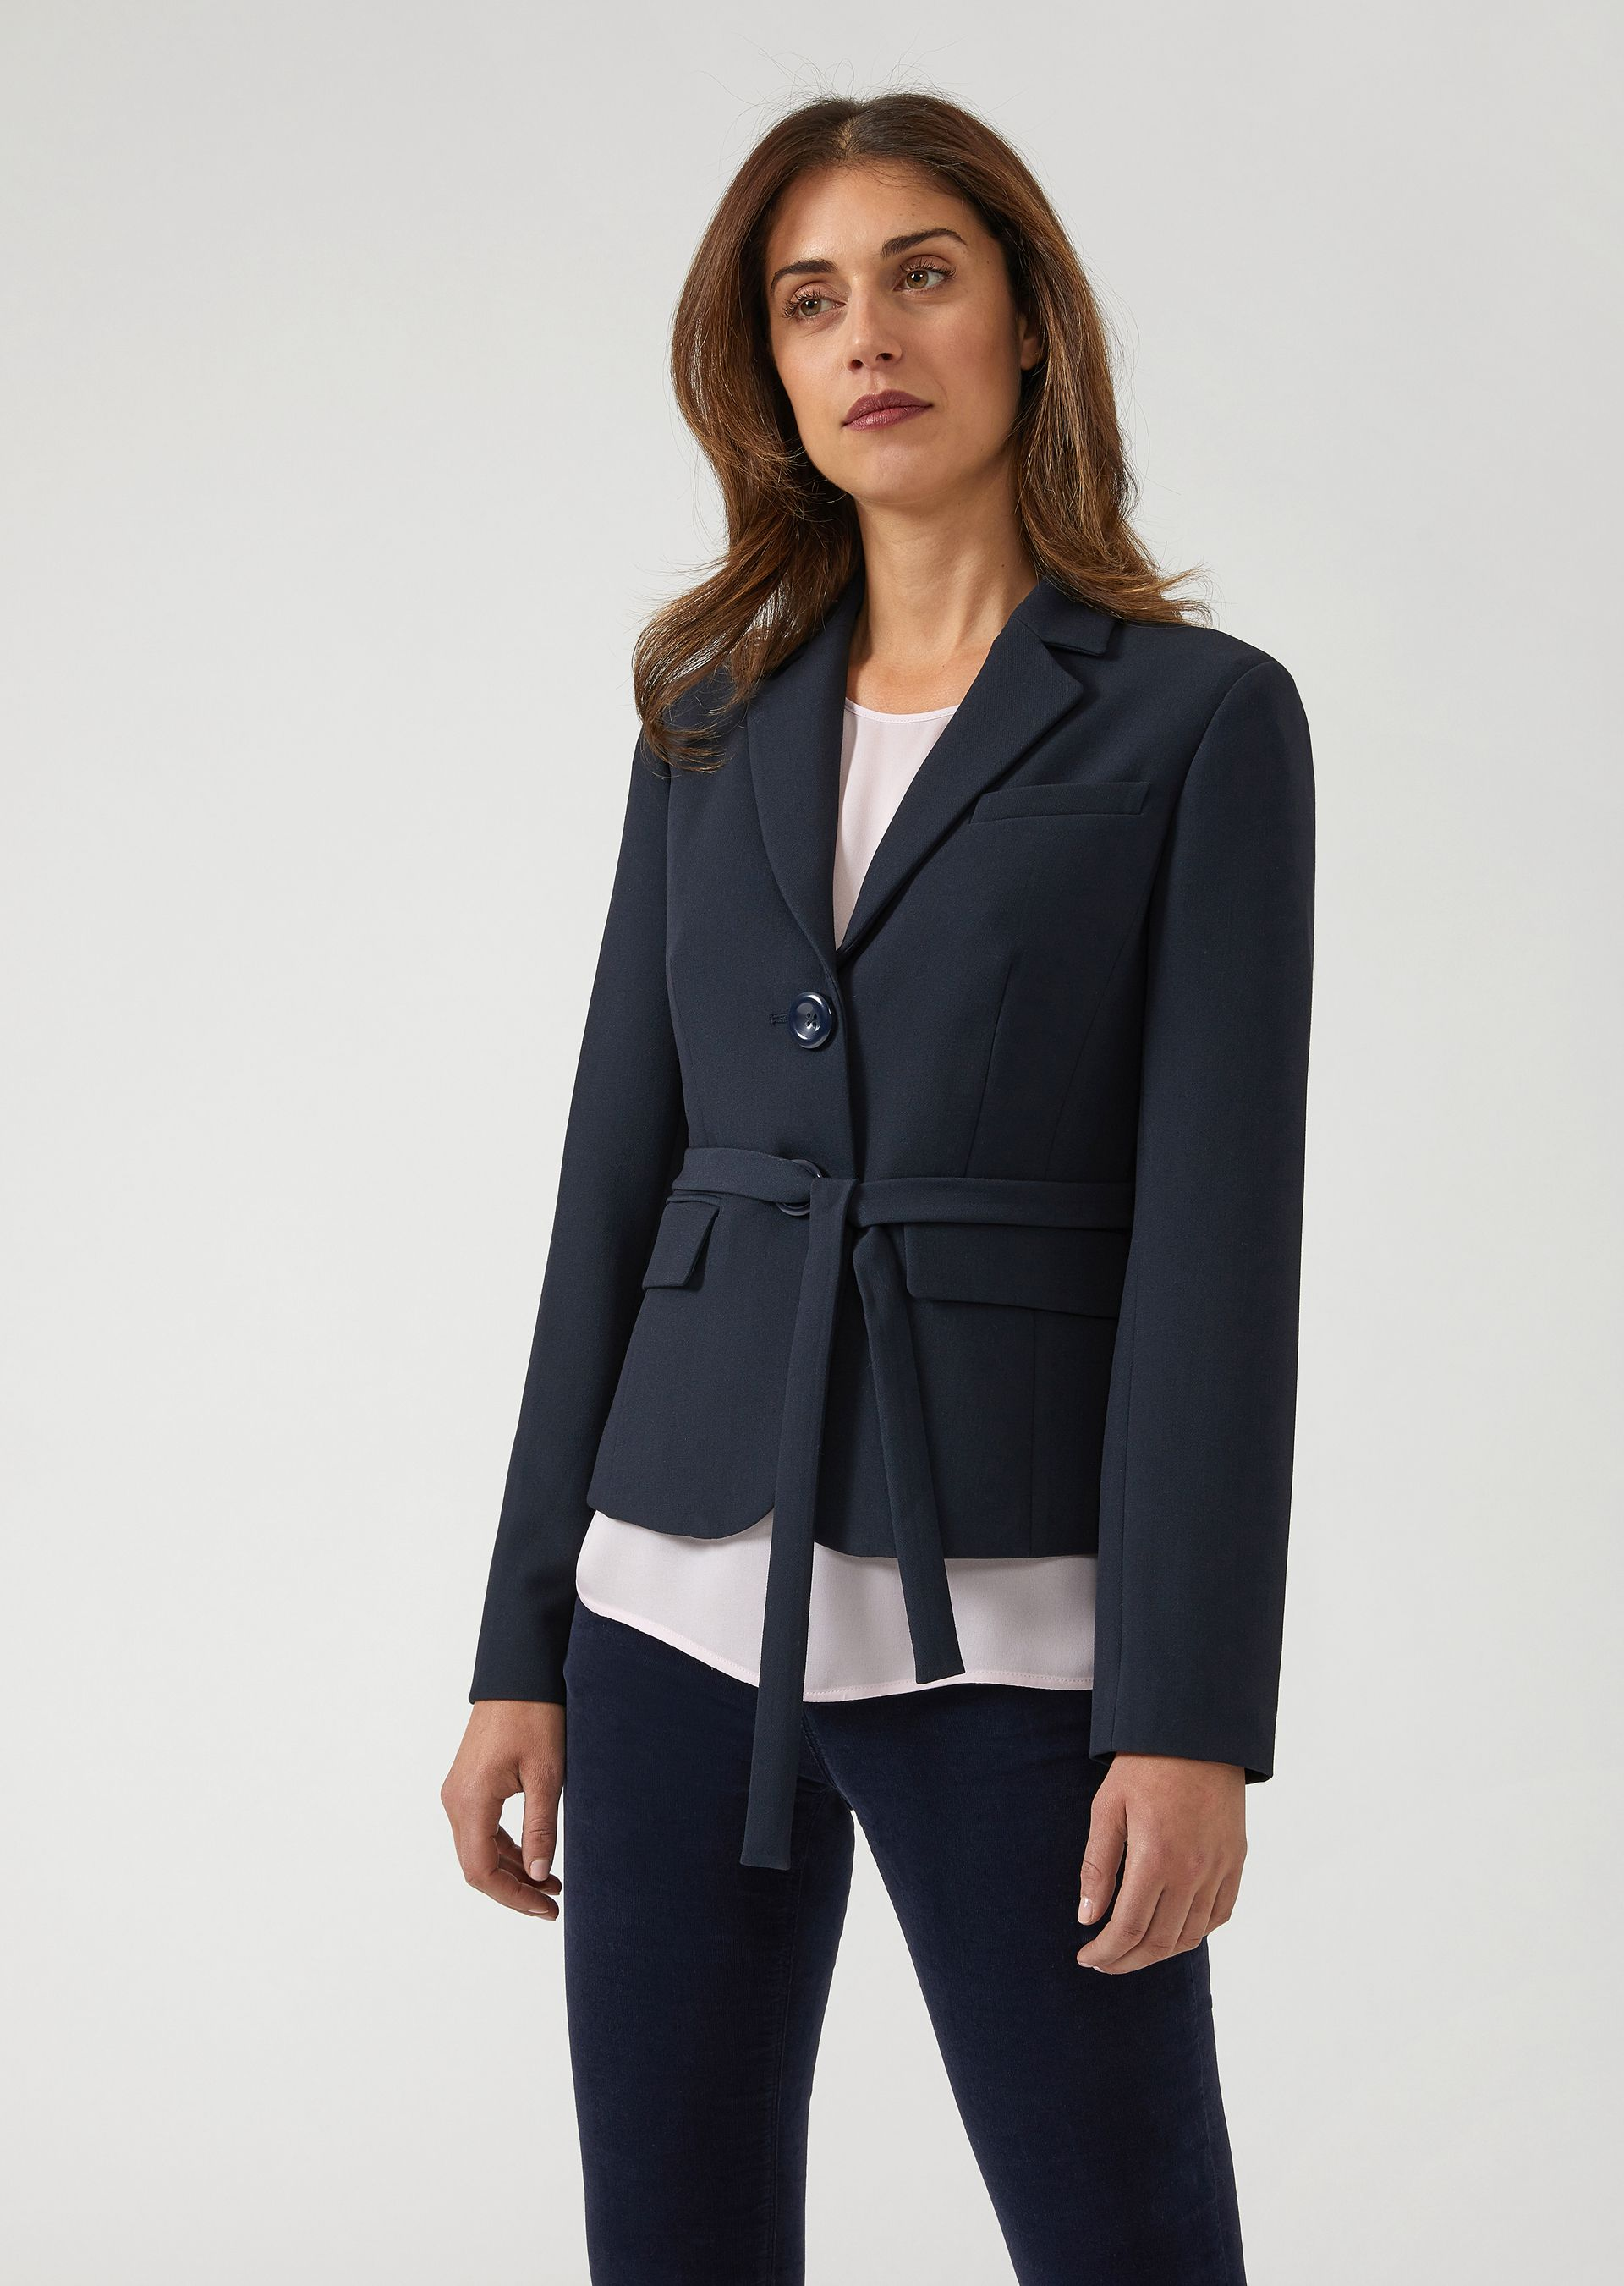 Casual Jackets - Item 41843753, Navy Blue from ARMANI.COM